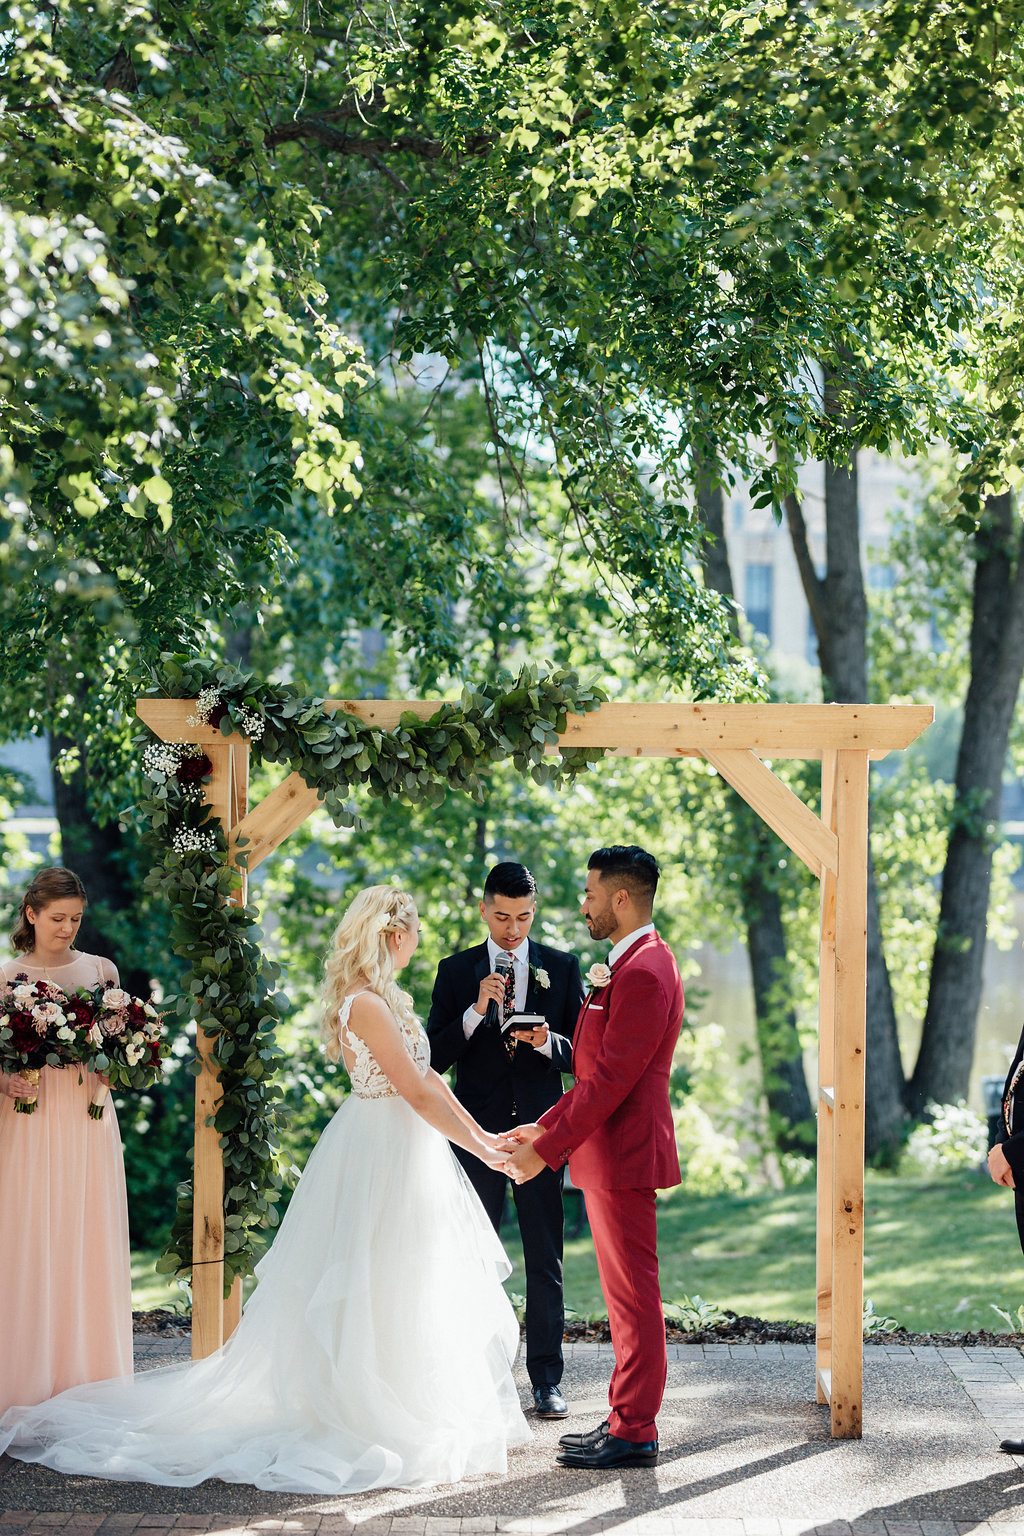 married under a wood arbor with simple green garland on the corner | Aaron T Photography | Nicollet Island Pavilion | Sixpence Events & Planning wedding blog